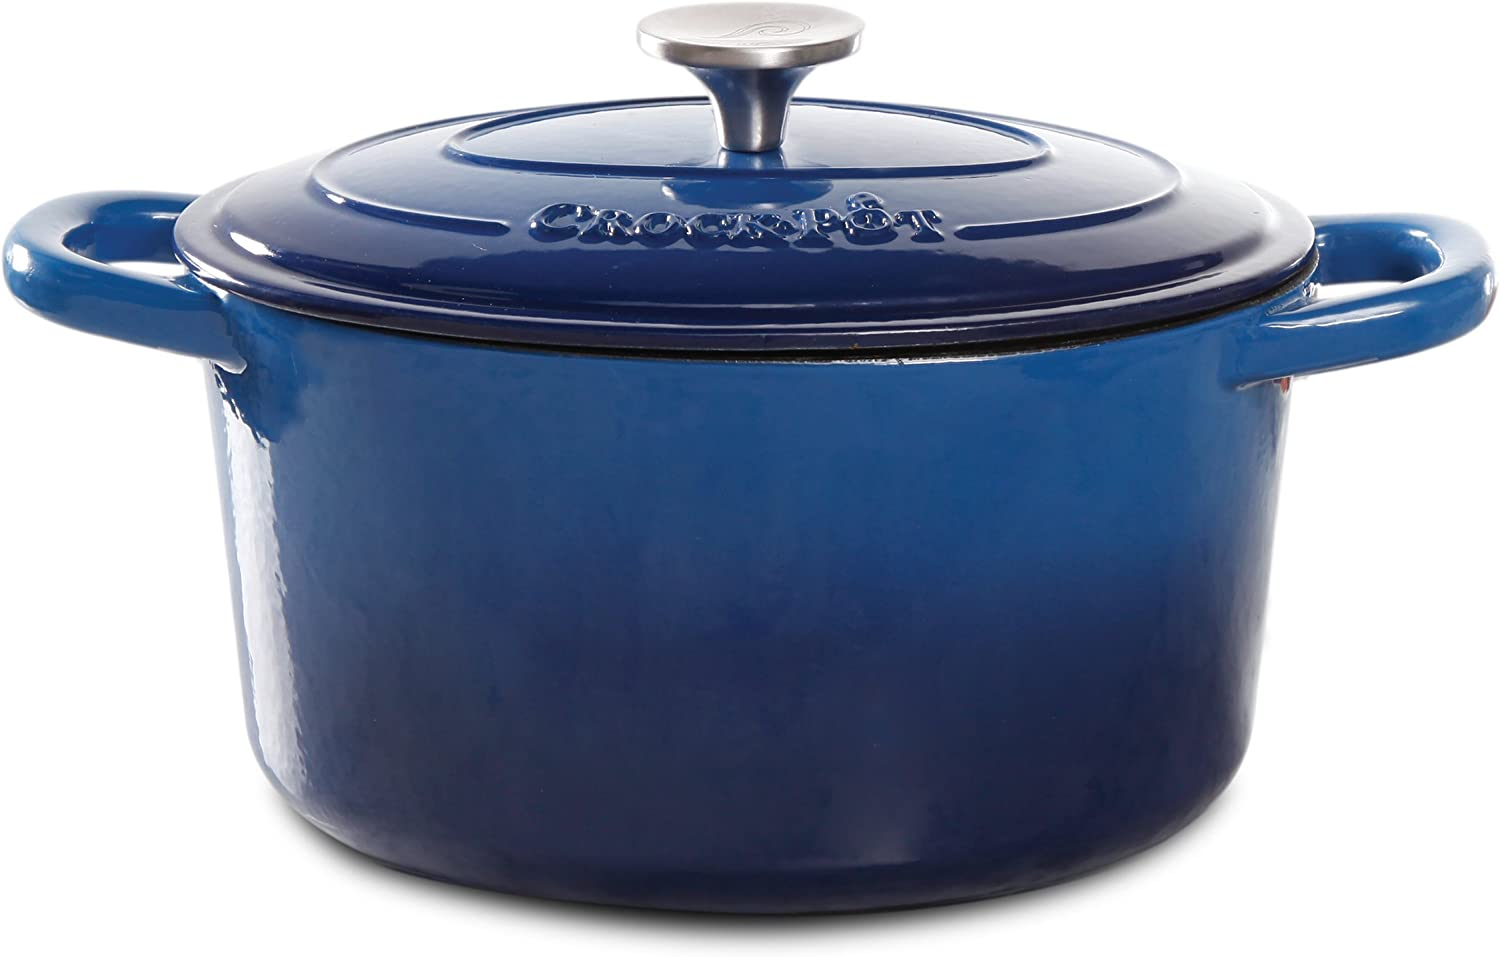 Crock Pot 69145.02 Artisan 7 Quart Enameled Cast Iron Round Dutch Oven, Sapphire bluee